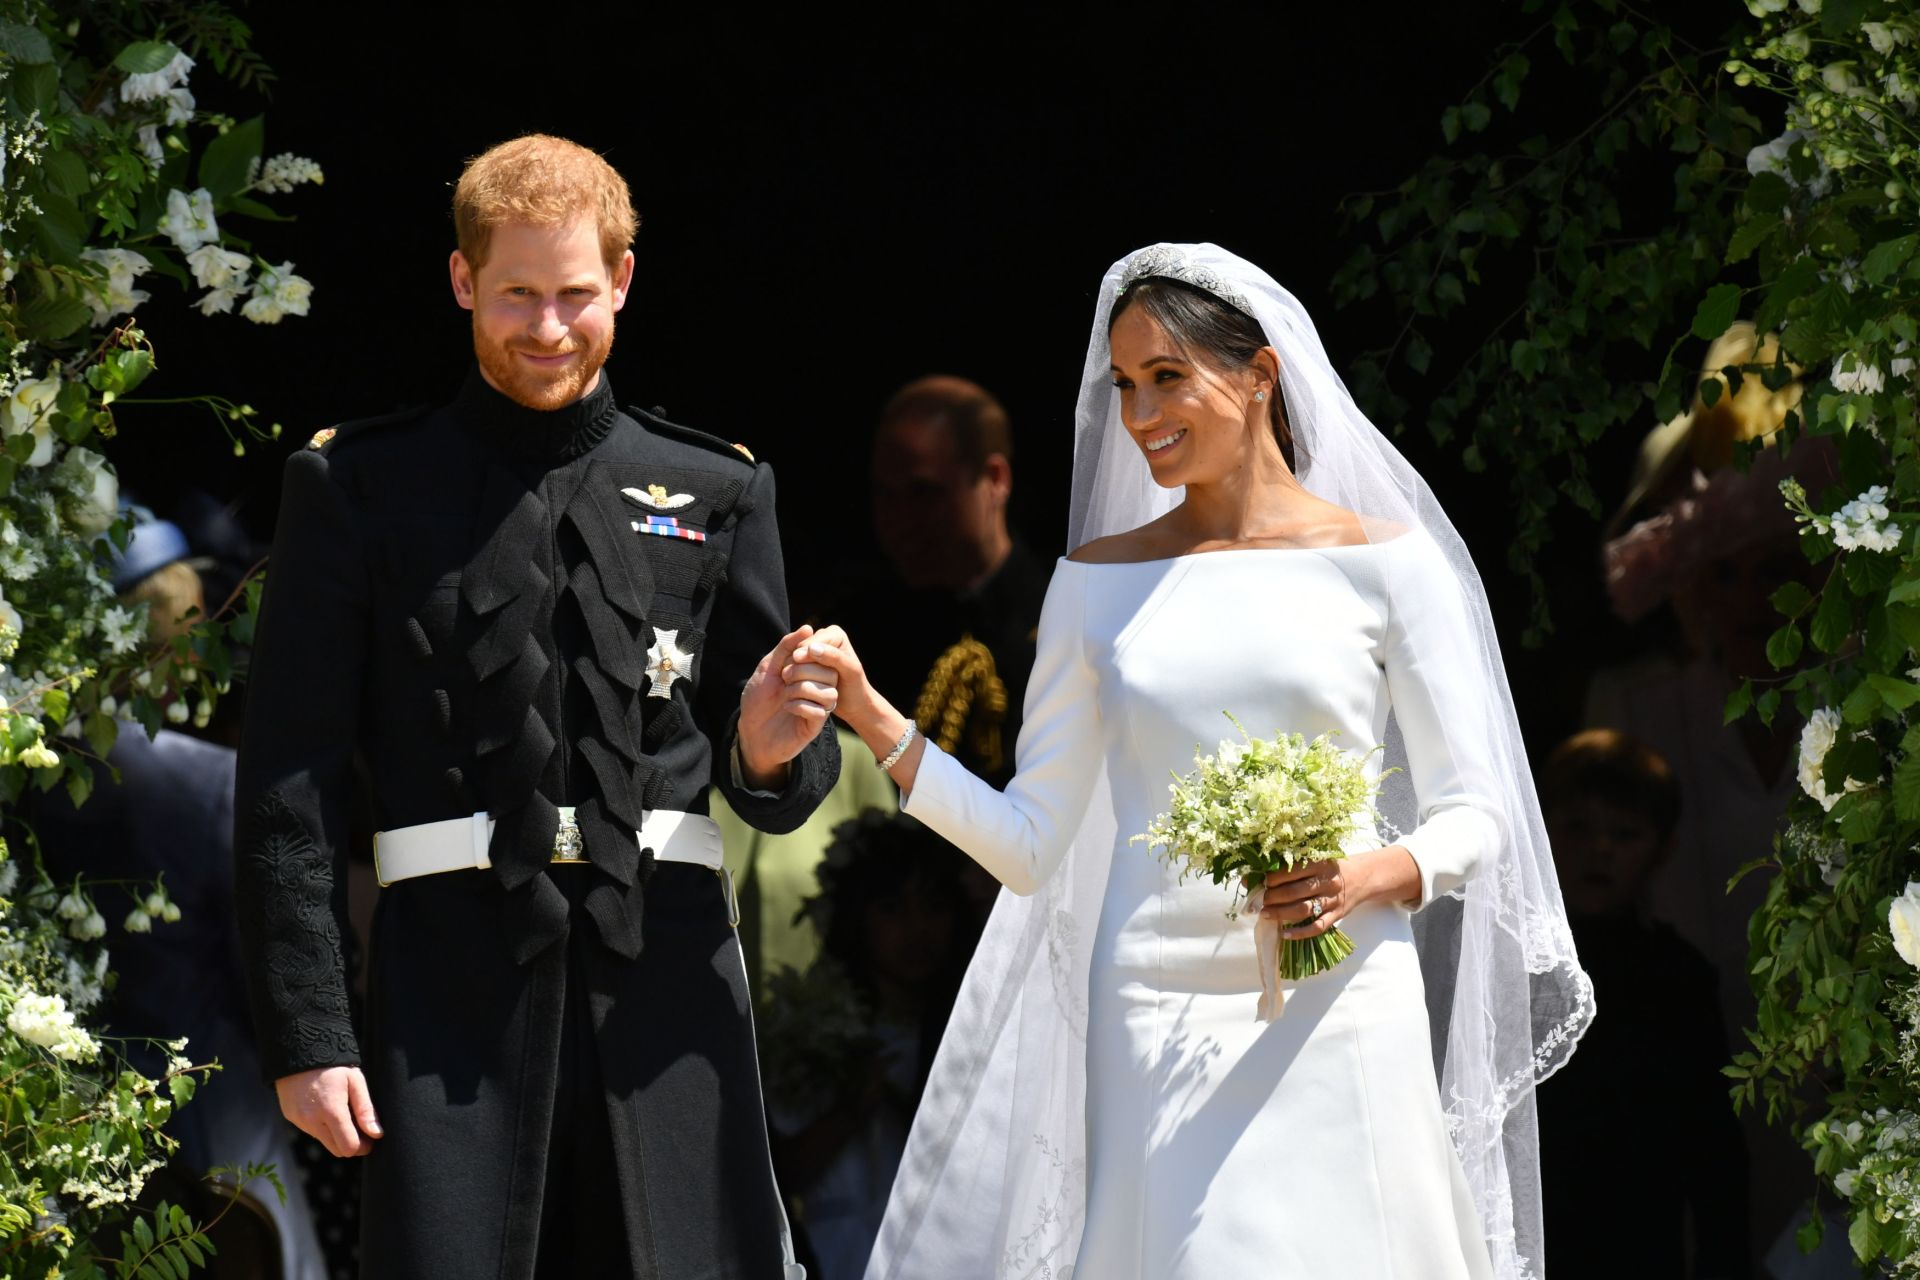 Givenchy makes first statement about designing Meghan Markle's wedding dress